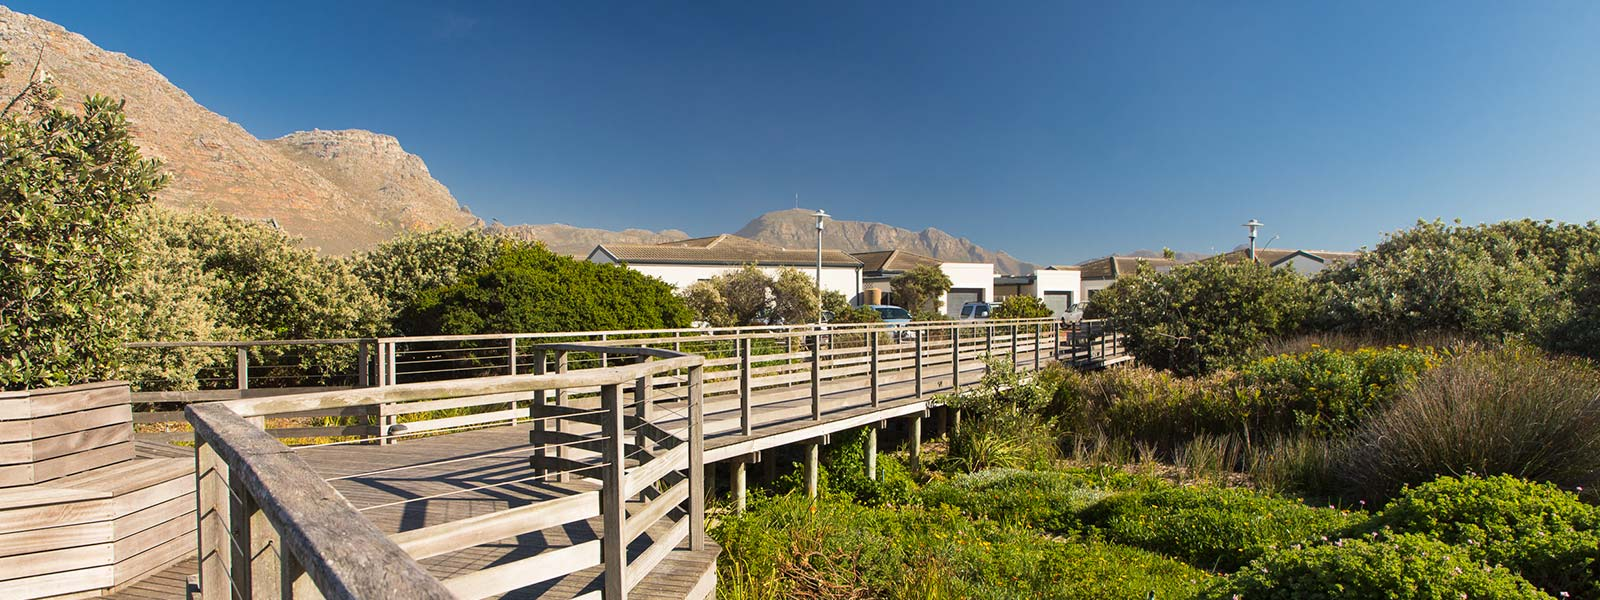 Evergreen Muizenberg